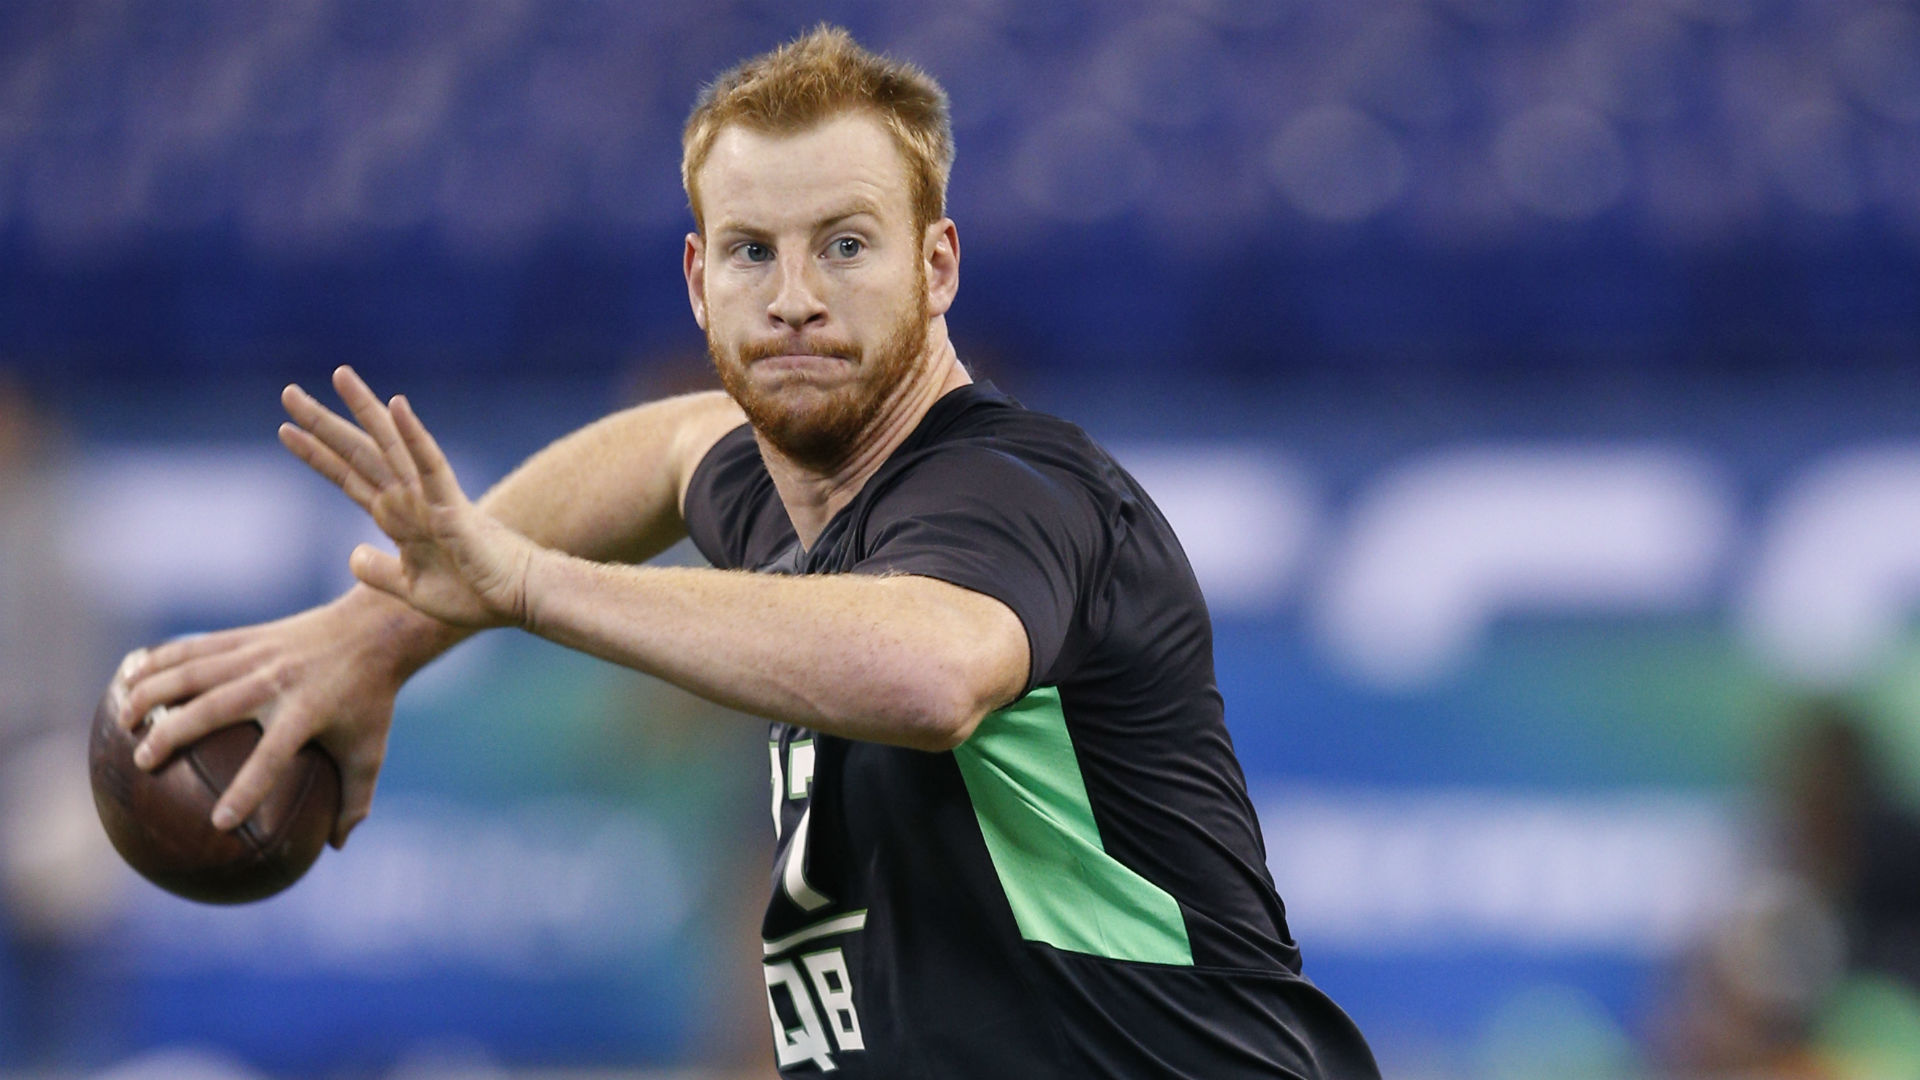 Carson Wentz most 'NFL-ready' QB Jon Gruden has seen in recent years | NFL | Sporting News